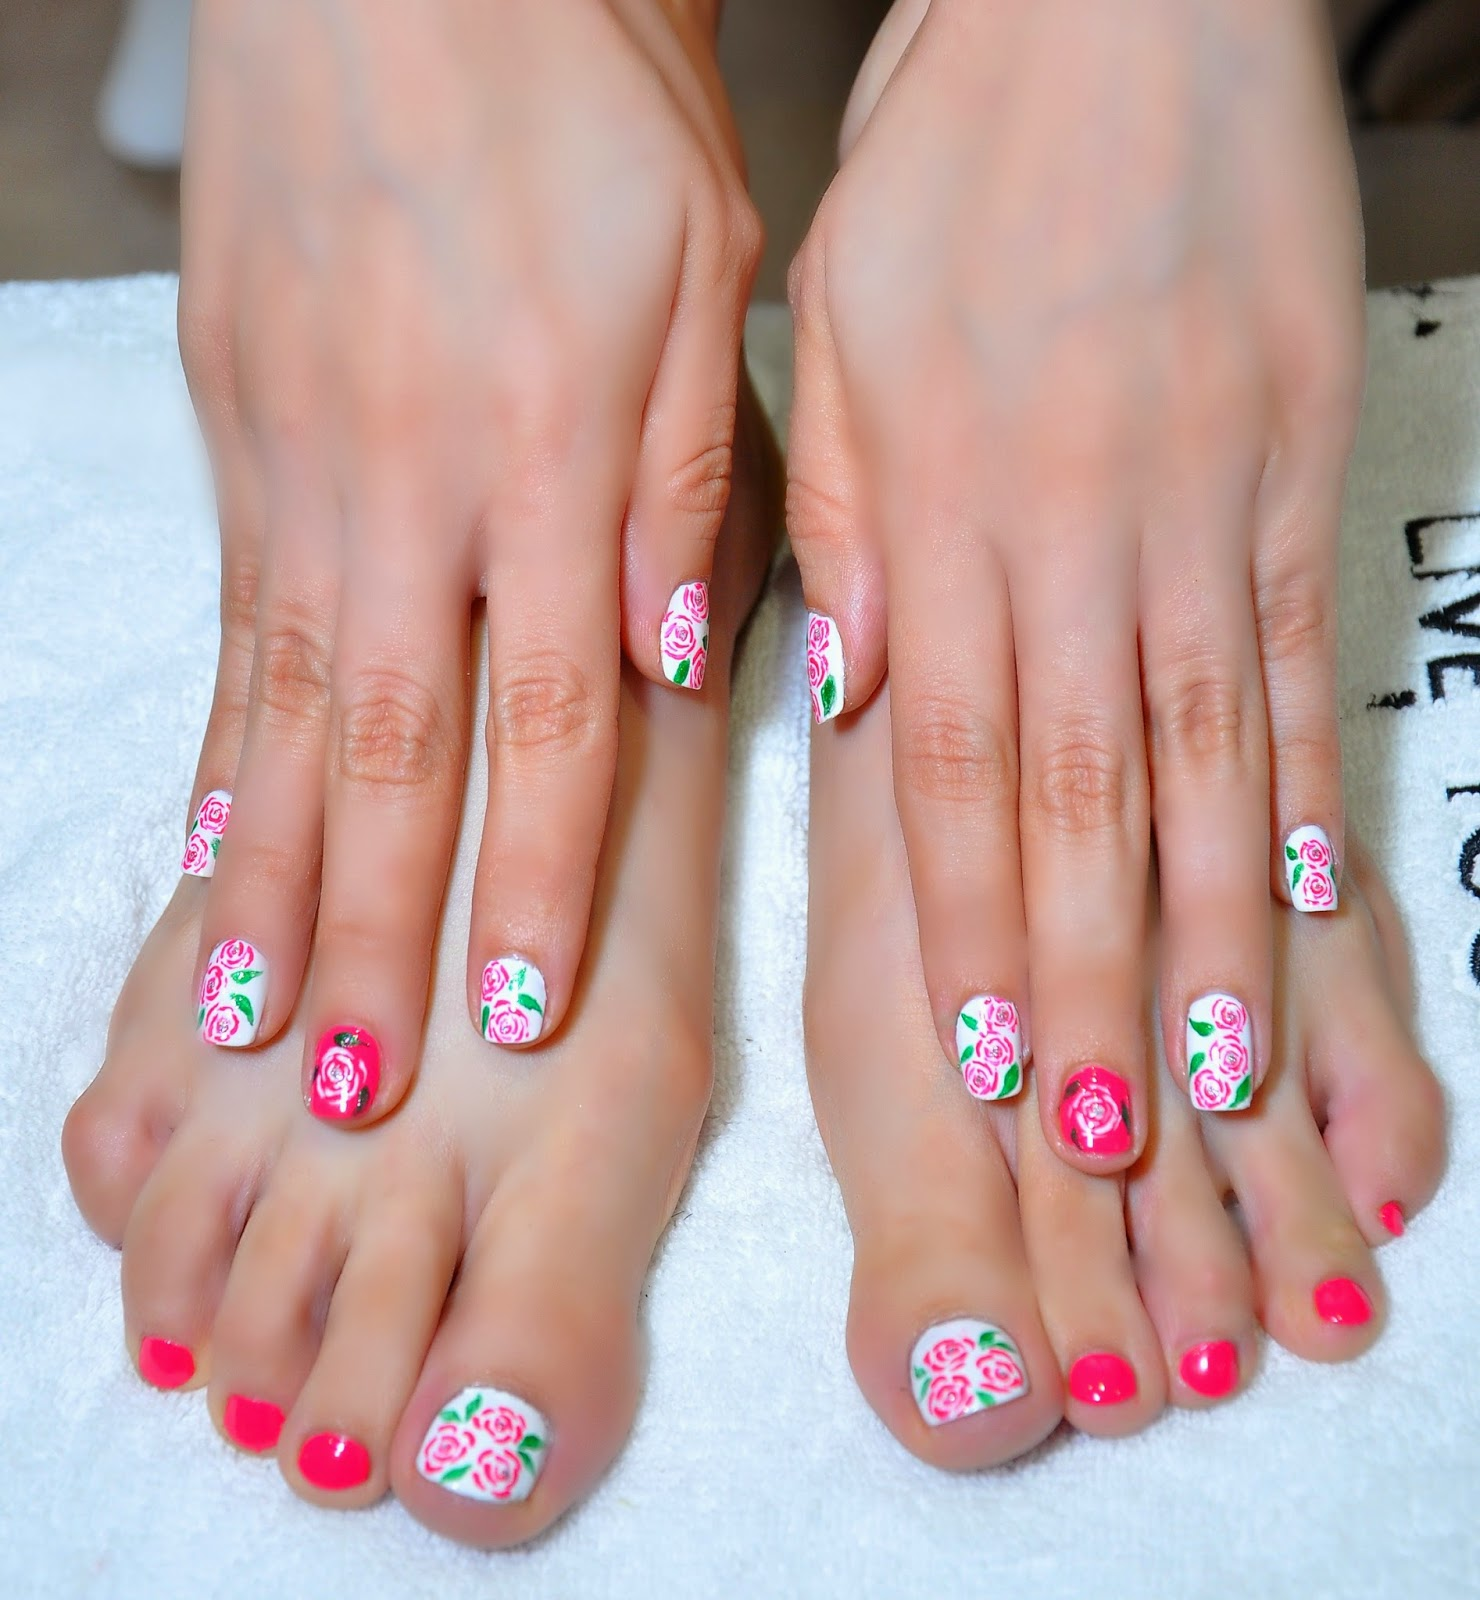 Roses Art Manicure & Pedicure by LYN Nails